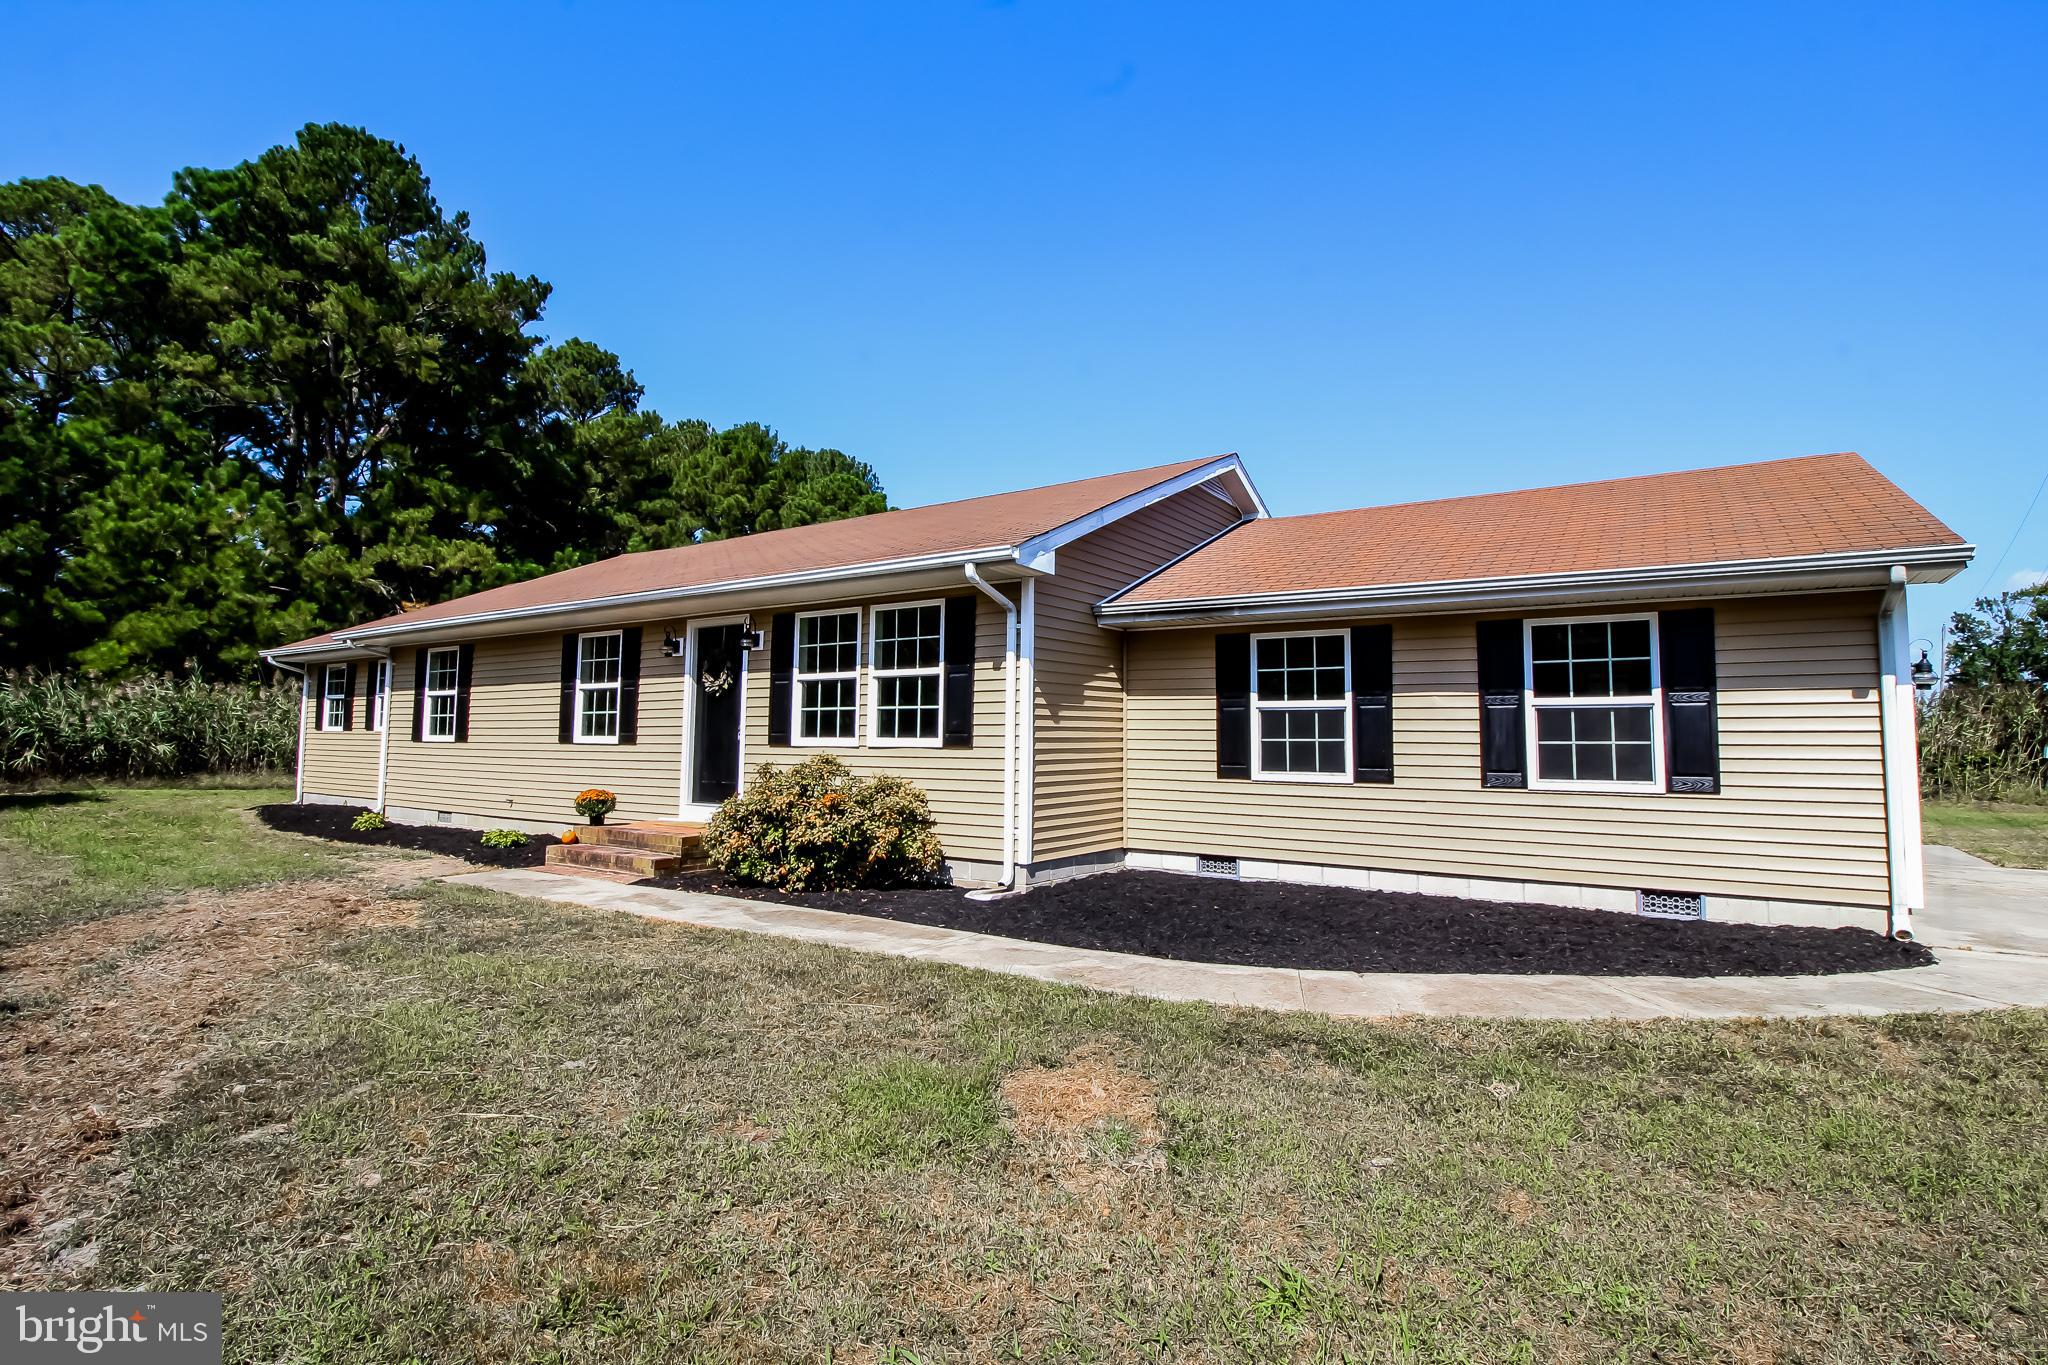 23330 BENTON ROAD, DEAL ISLAND, MD 21821